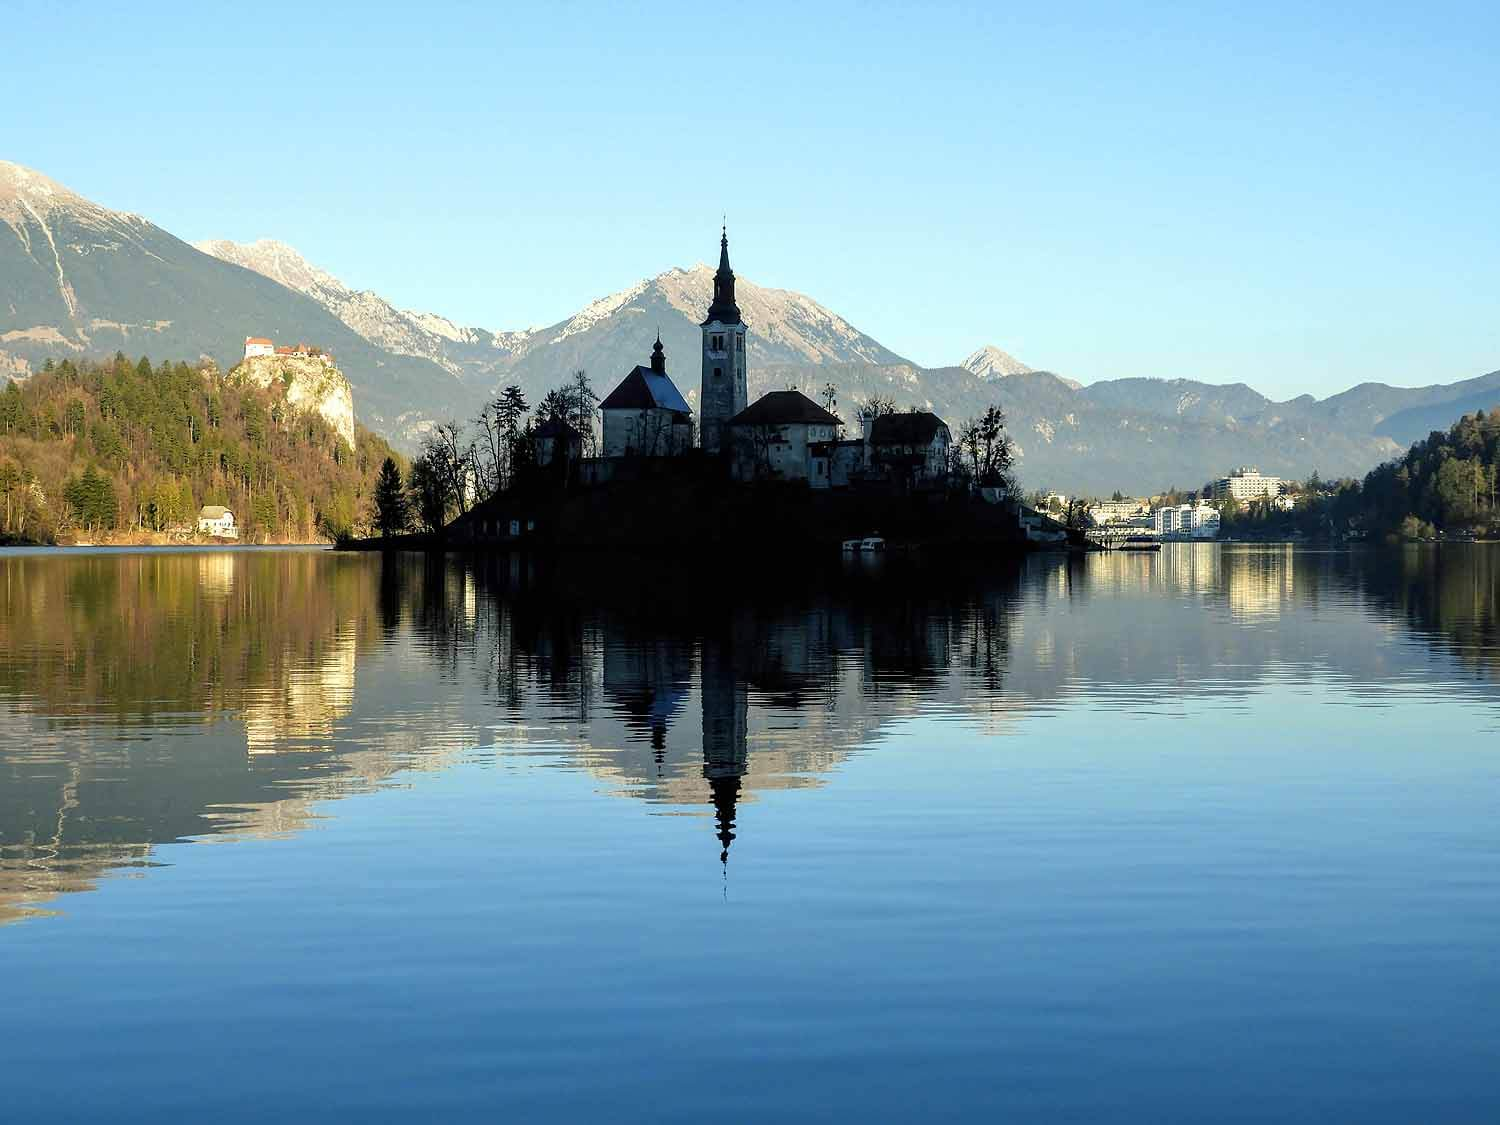 slovenia-lake-bled-island-winter.jpg